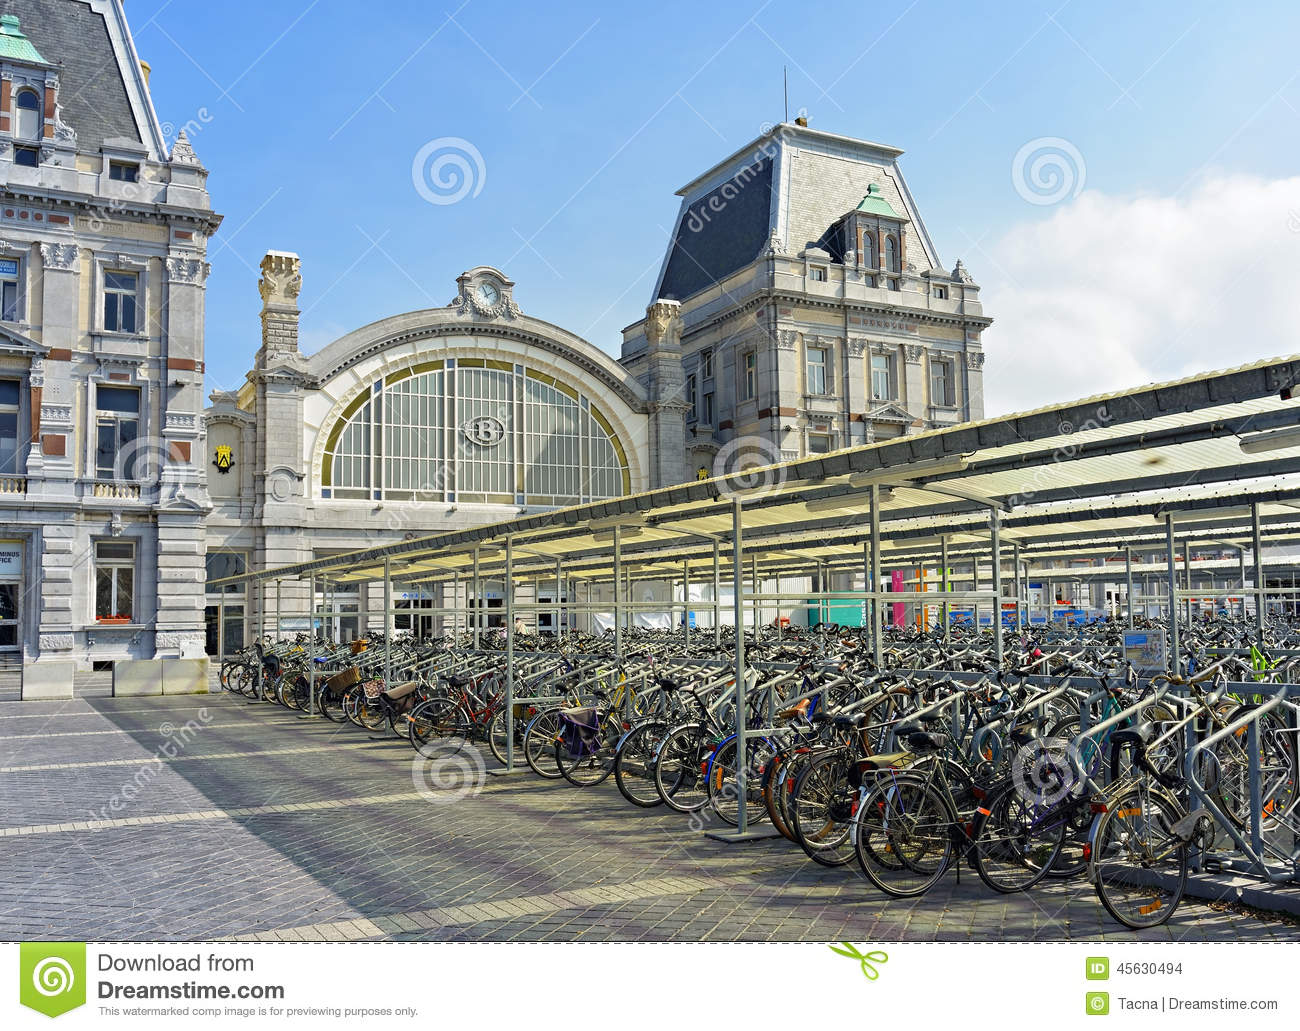 bicycles-front-central